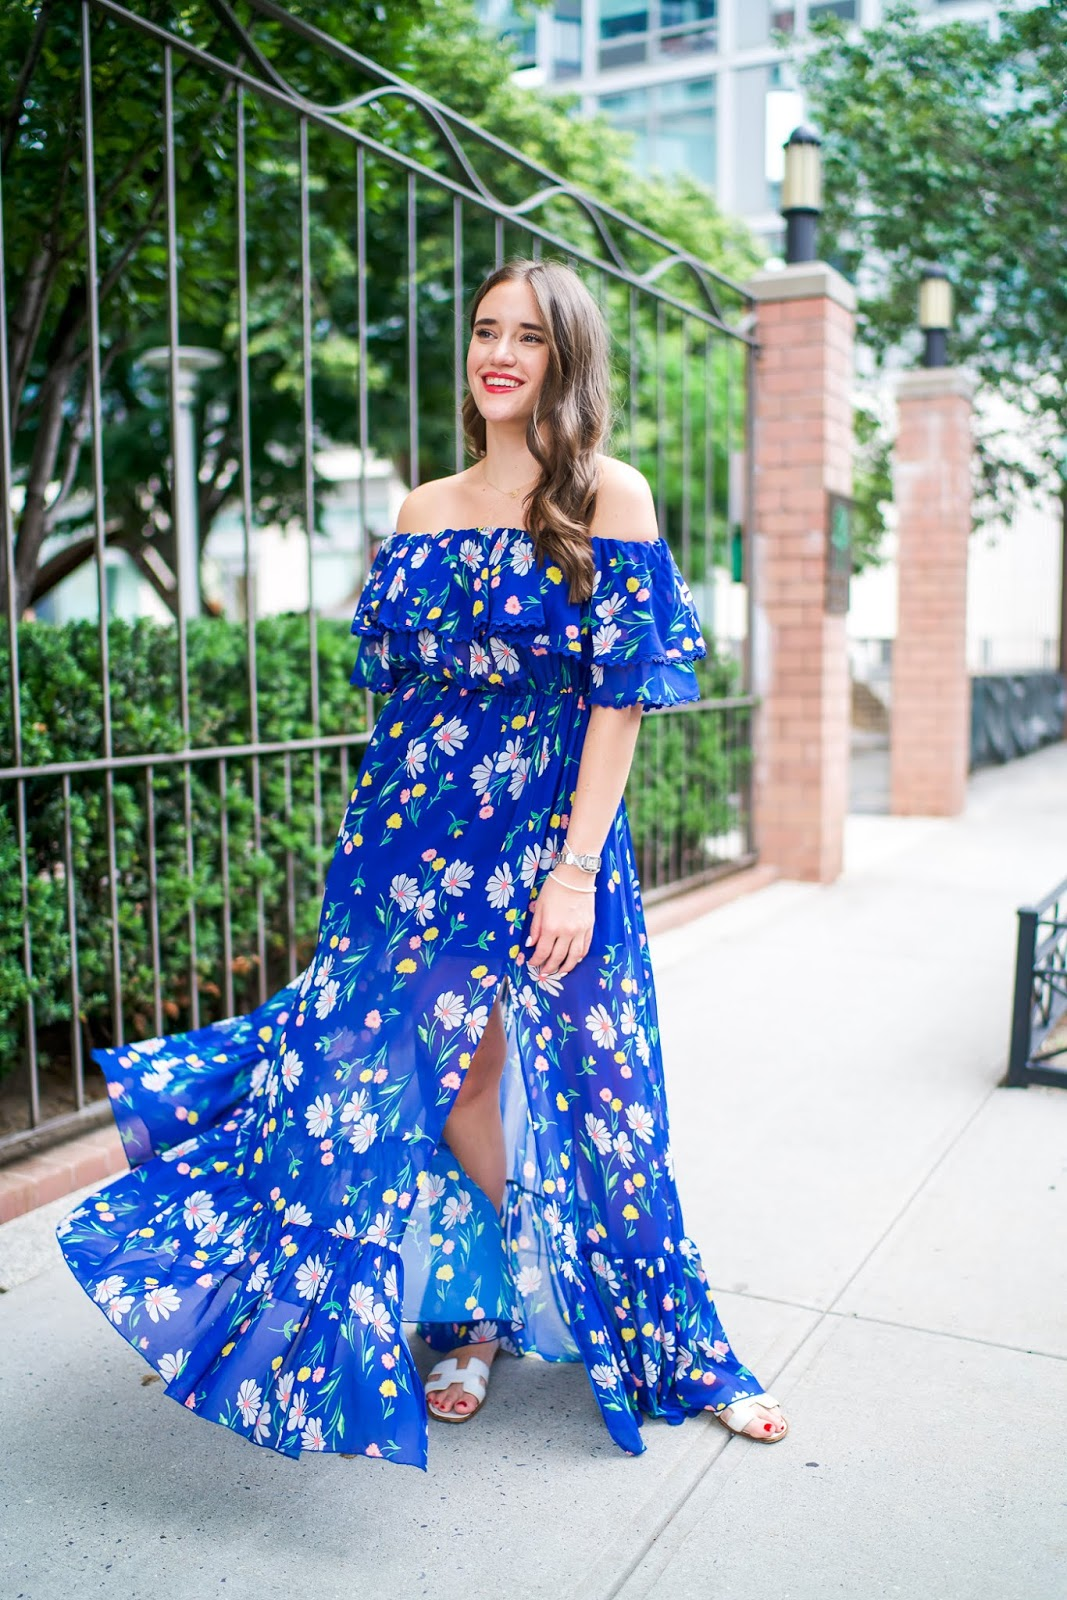 Topshop floral maxi dress styled by popular New York fashion blogger, Covering the Bases